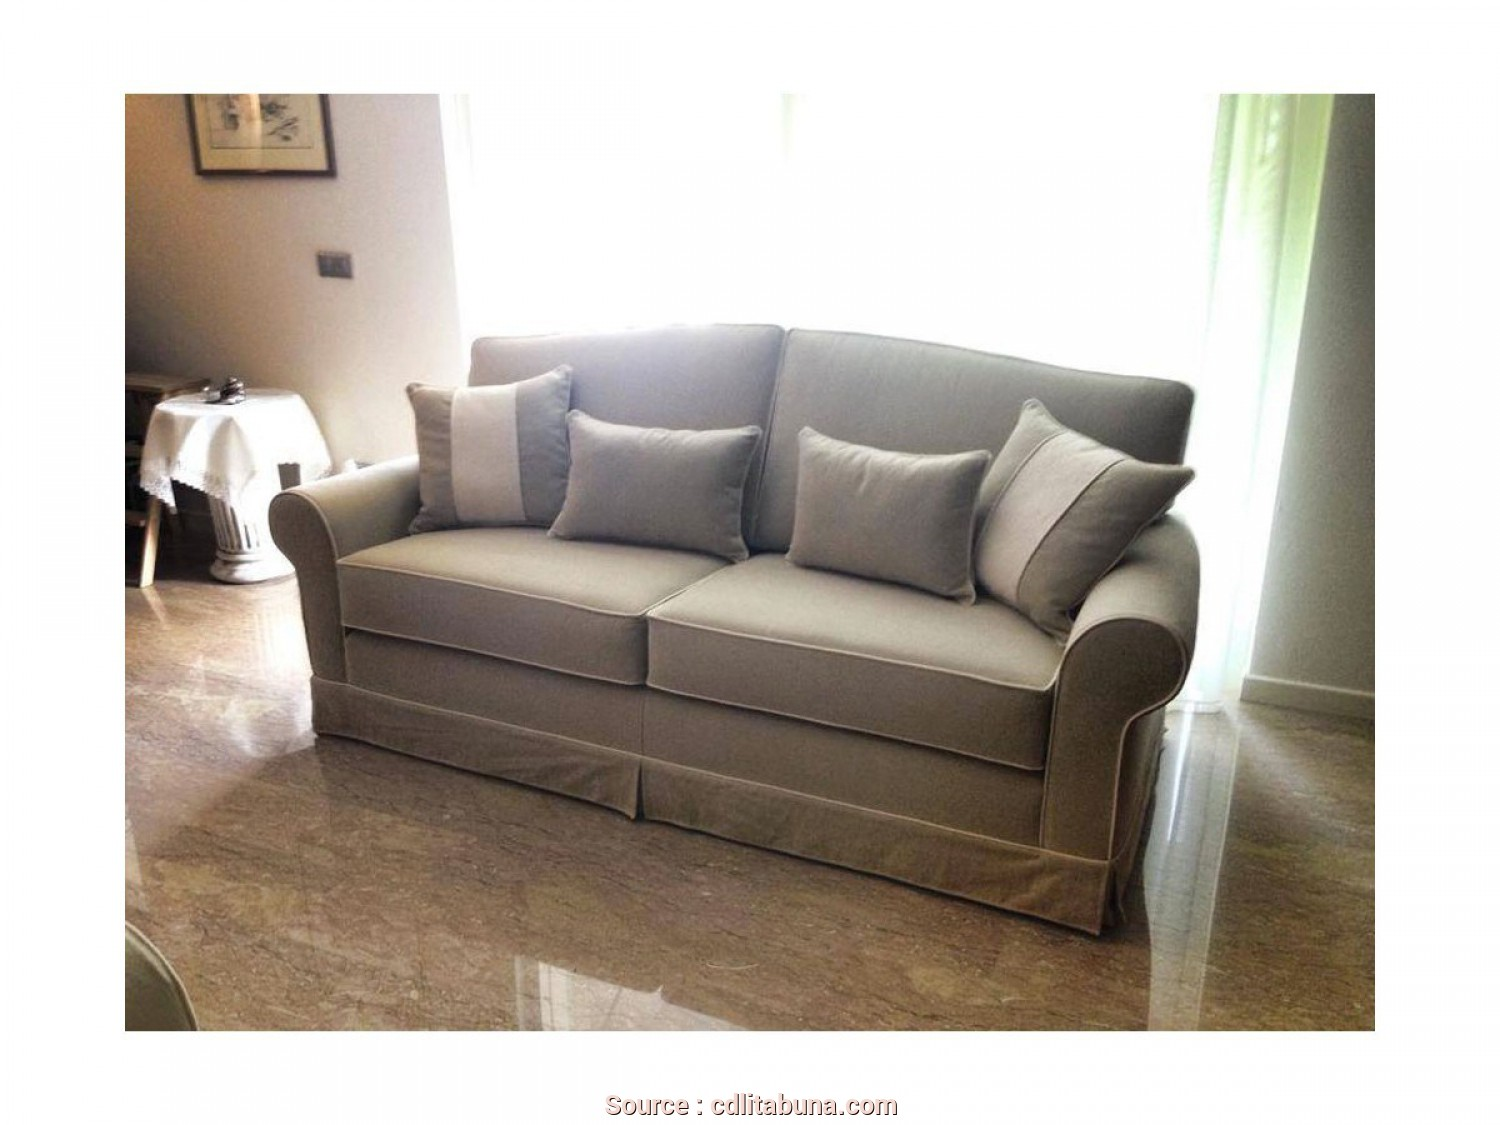 Divani Mondo Convenienza, Recliner, Bello Divani, Recliner Mondo Convenienza